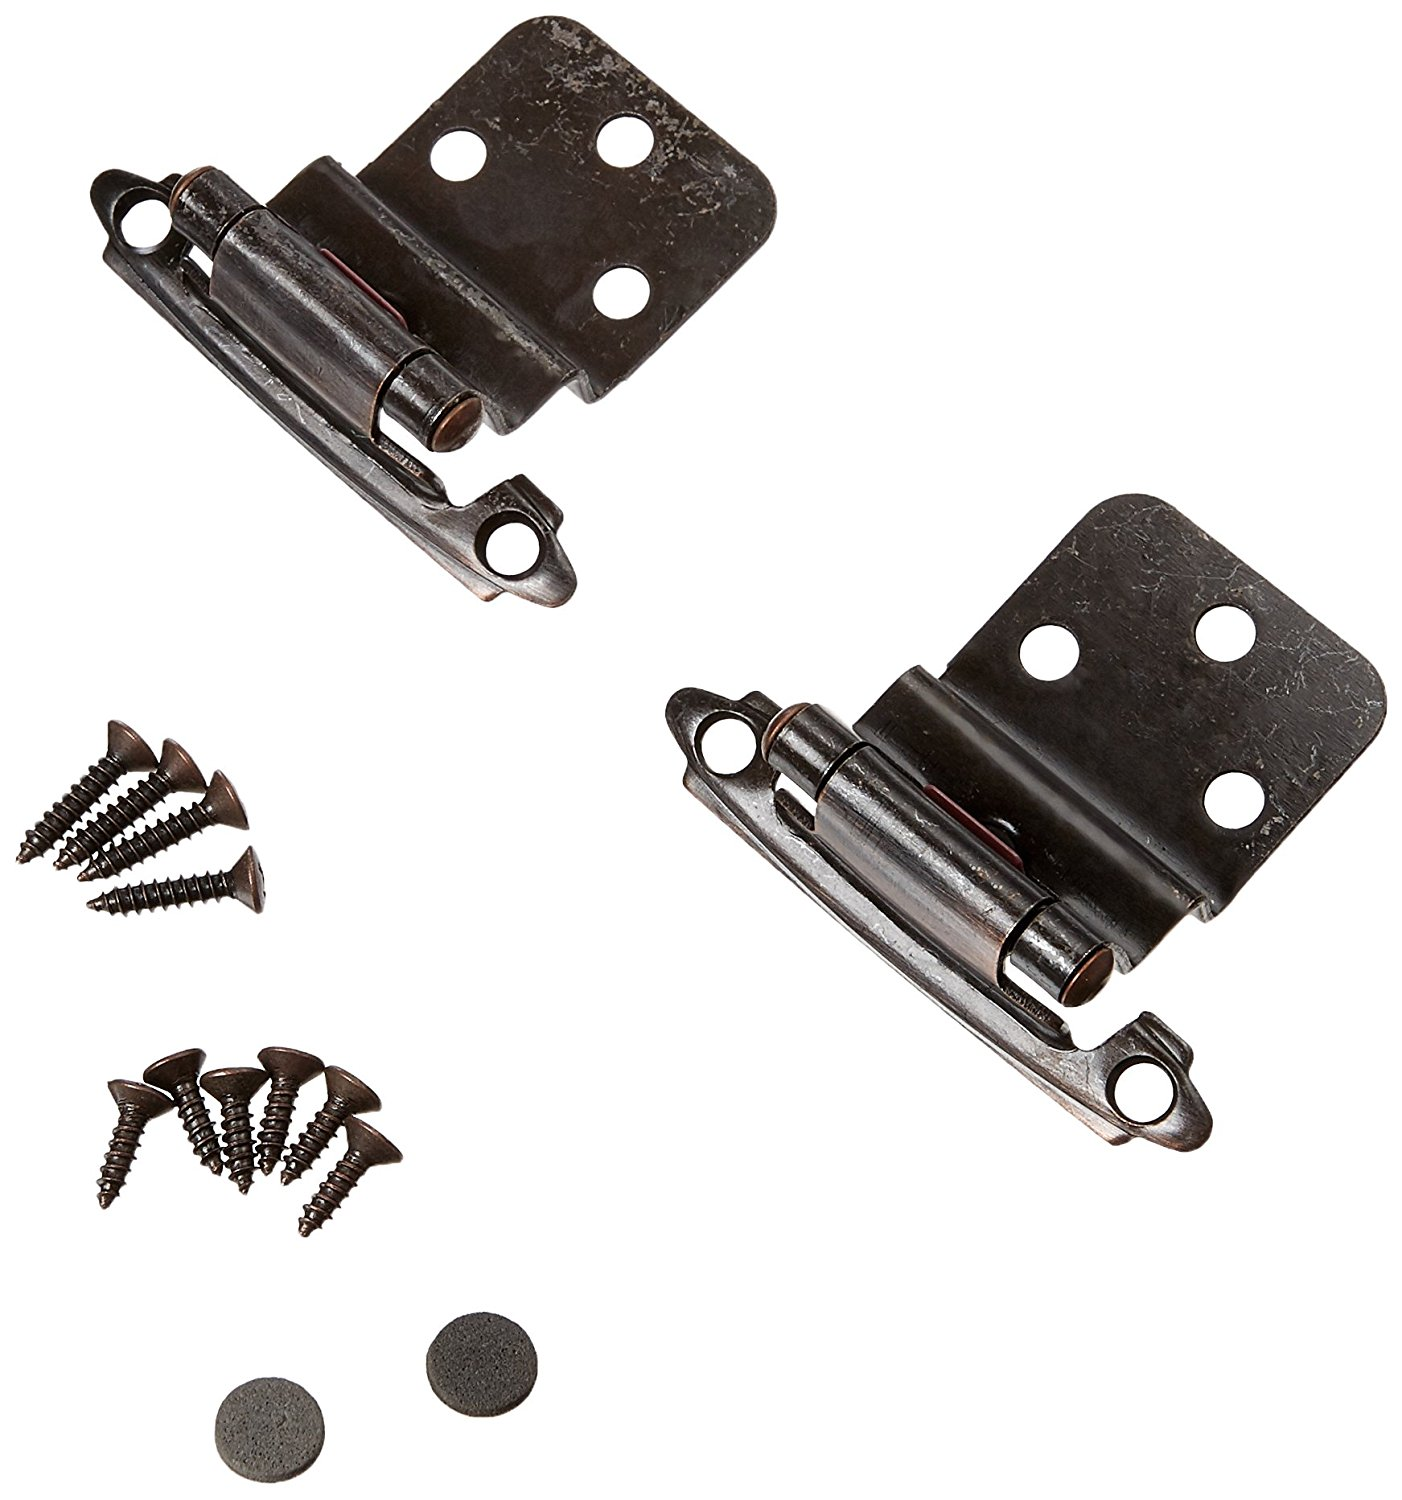 Cheap Stanley Cabinet Hinges, find Stanley Cabinet Hinges